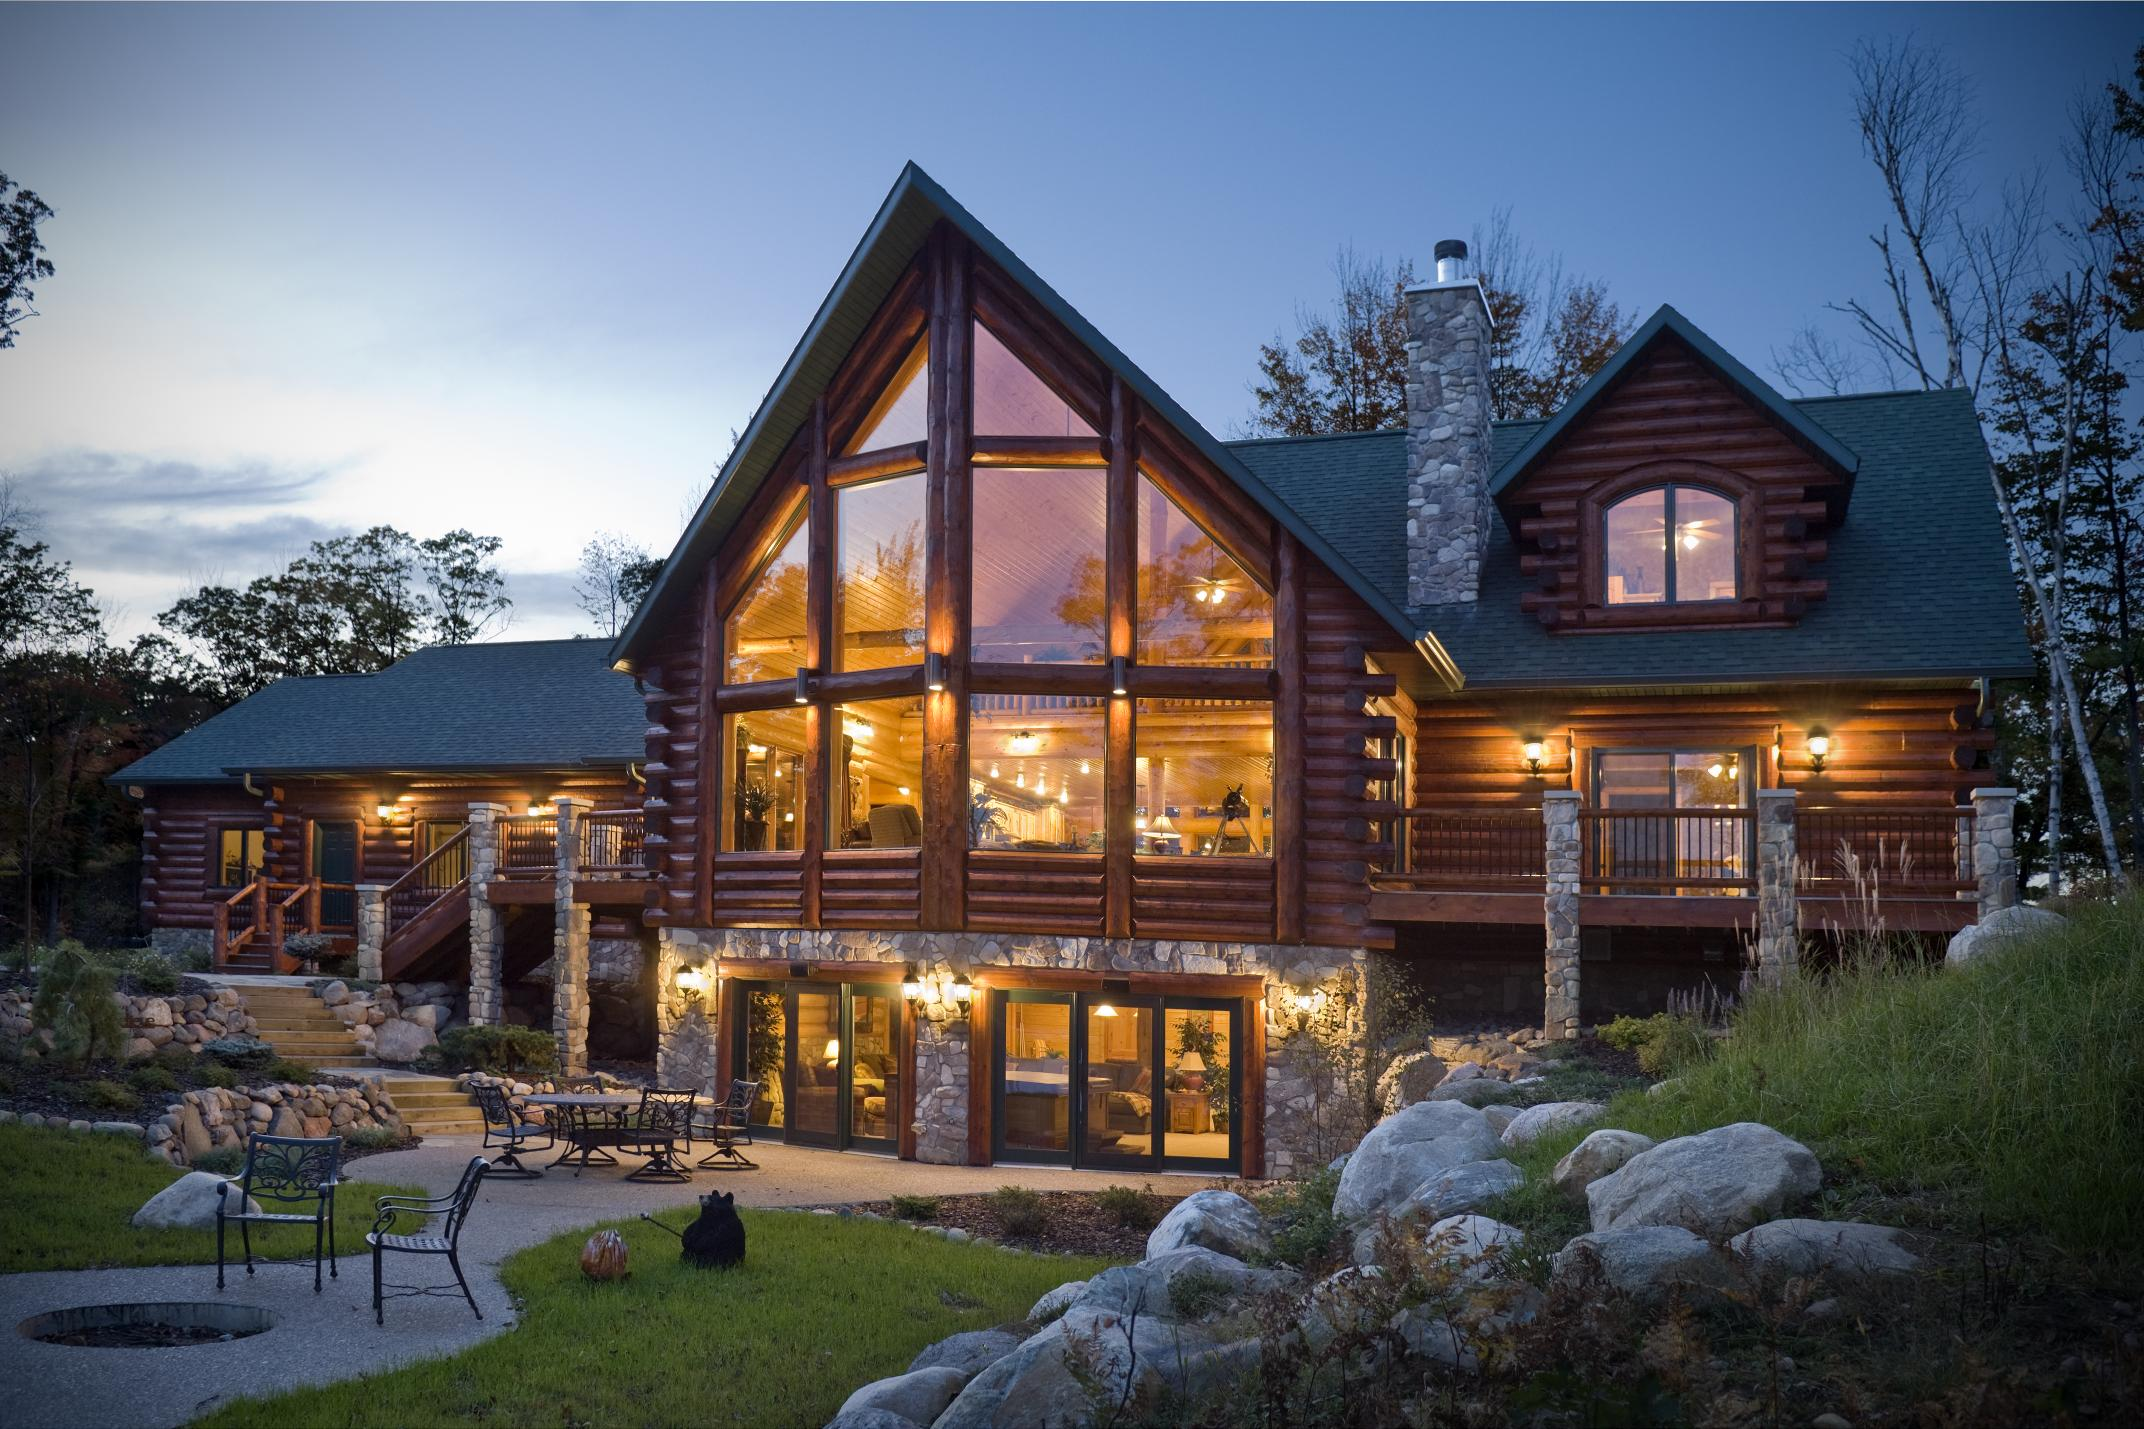 Sashco Log Home Products And Golden Eagle Log Homes Expand Distribution